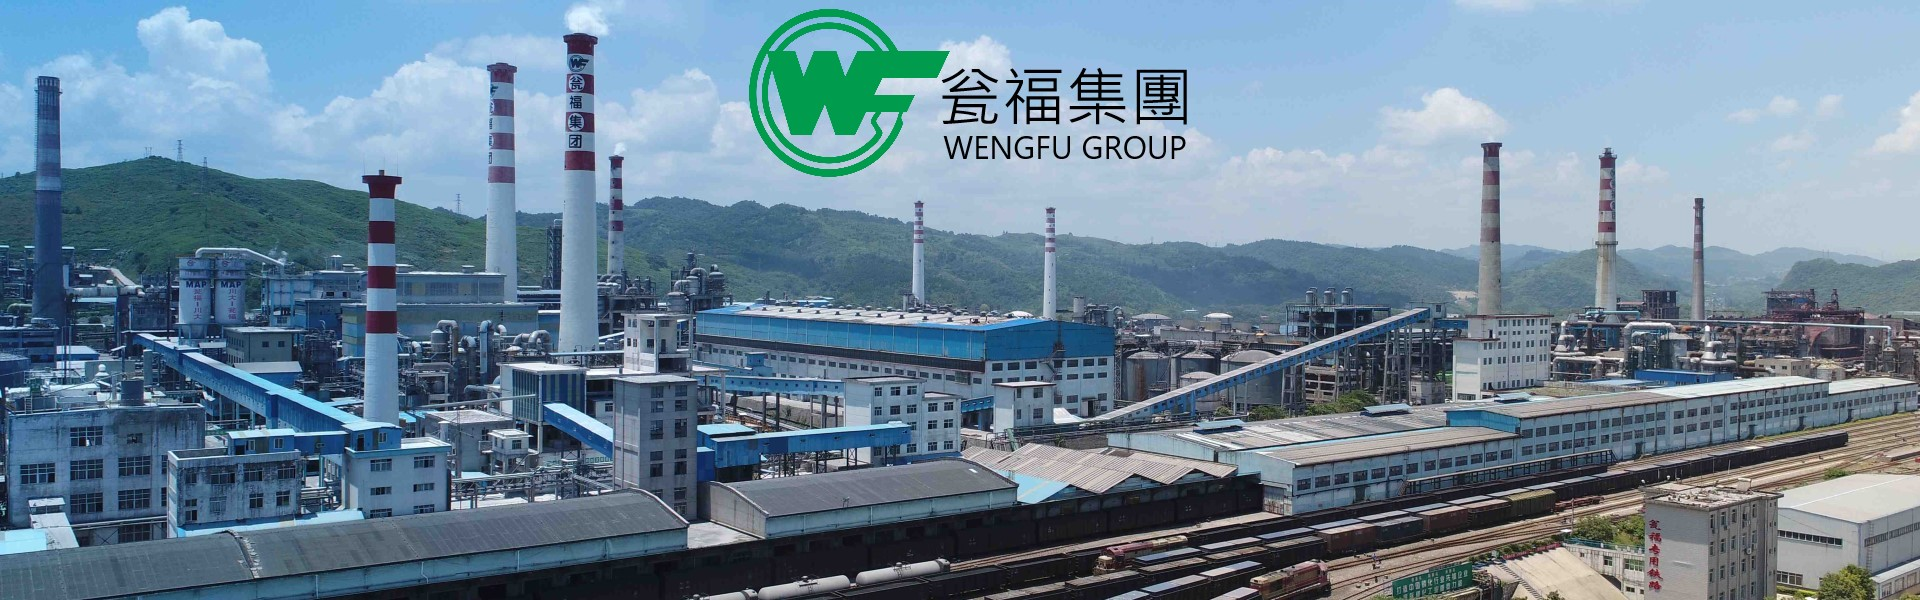 Wengfu phosphorus chemical industry